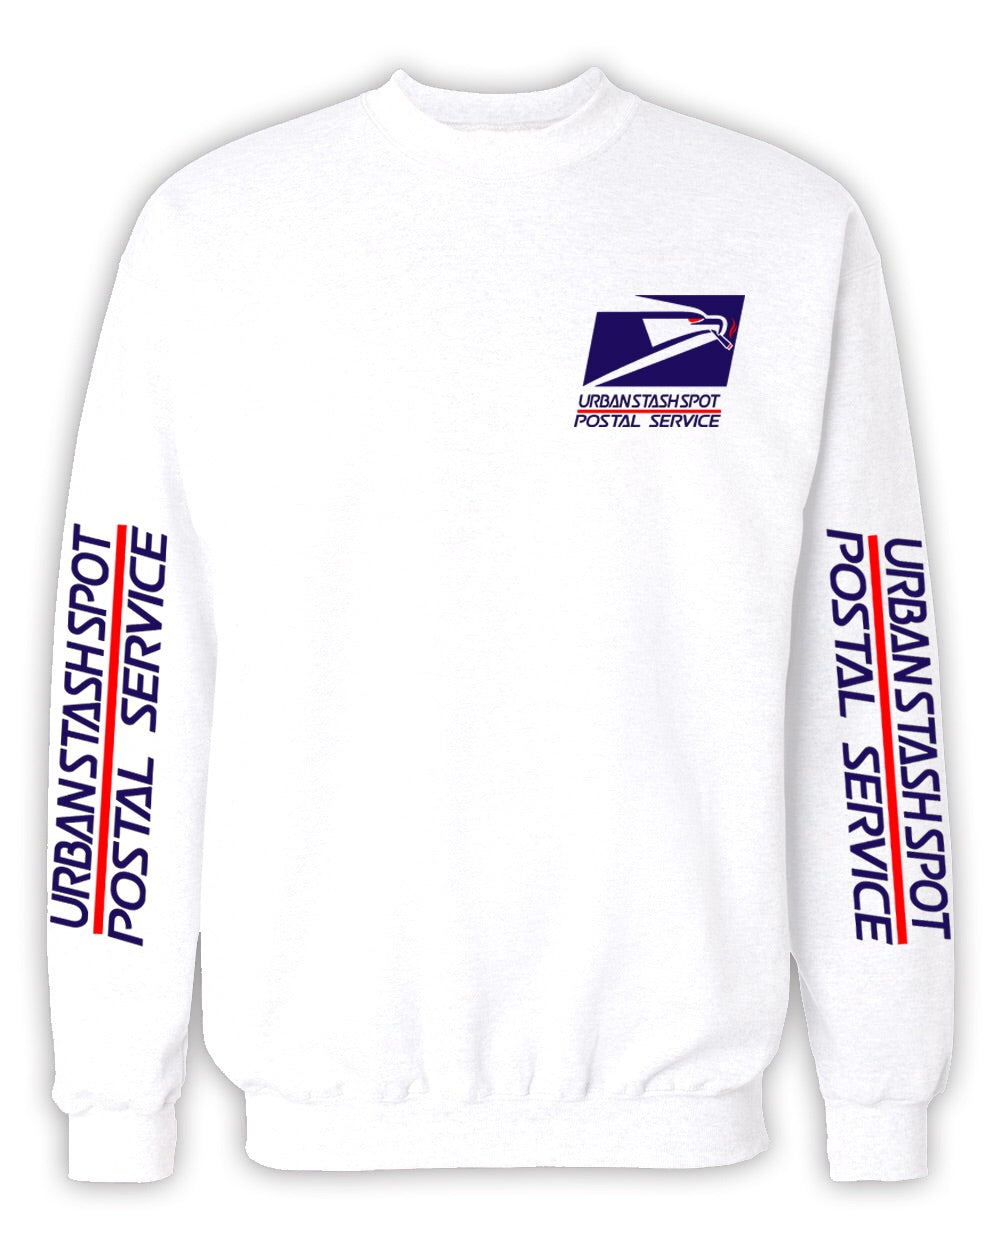 Urban stash spot postal service Long Sleeve T Shirt